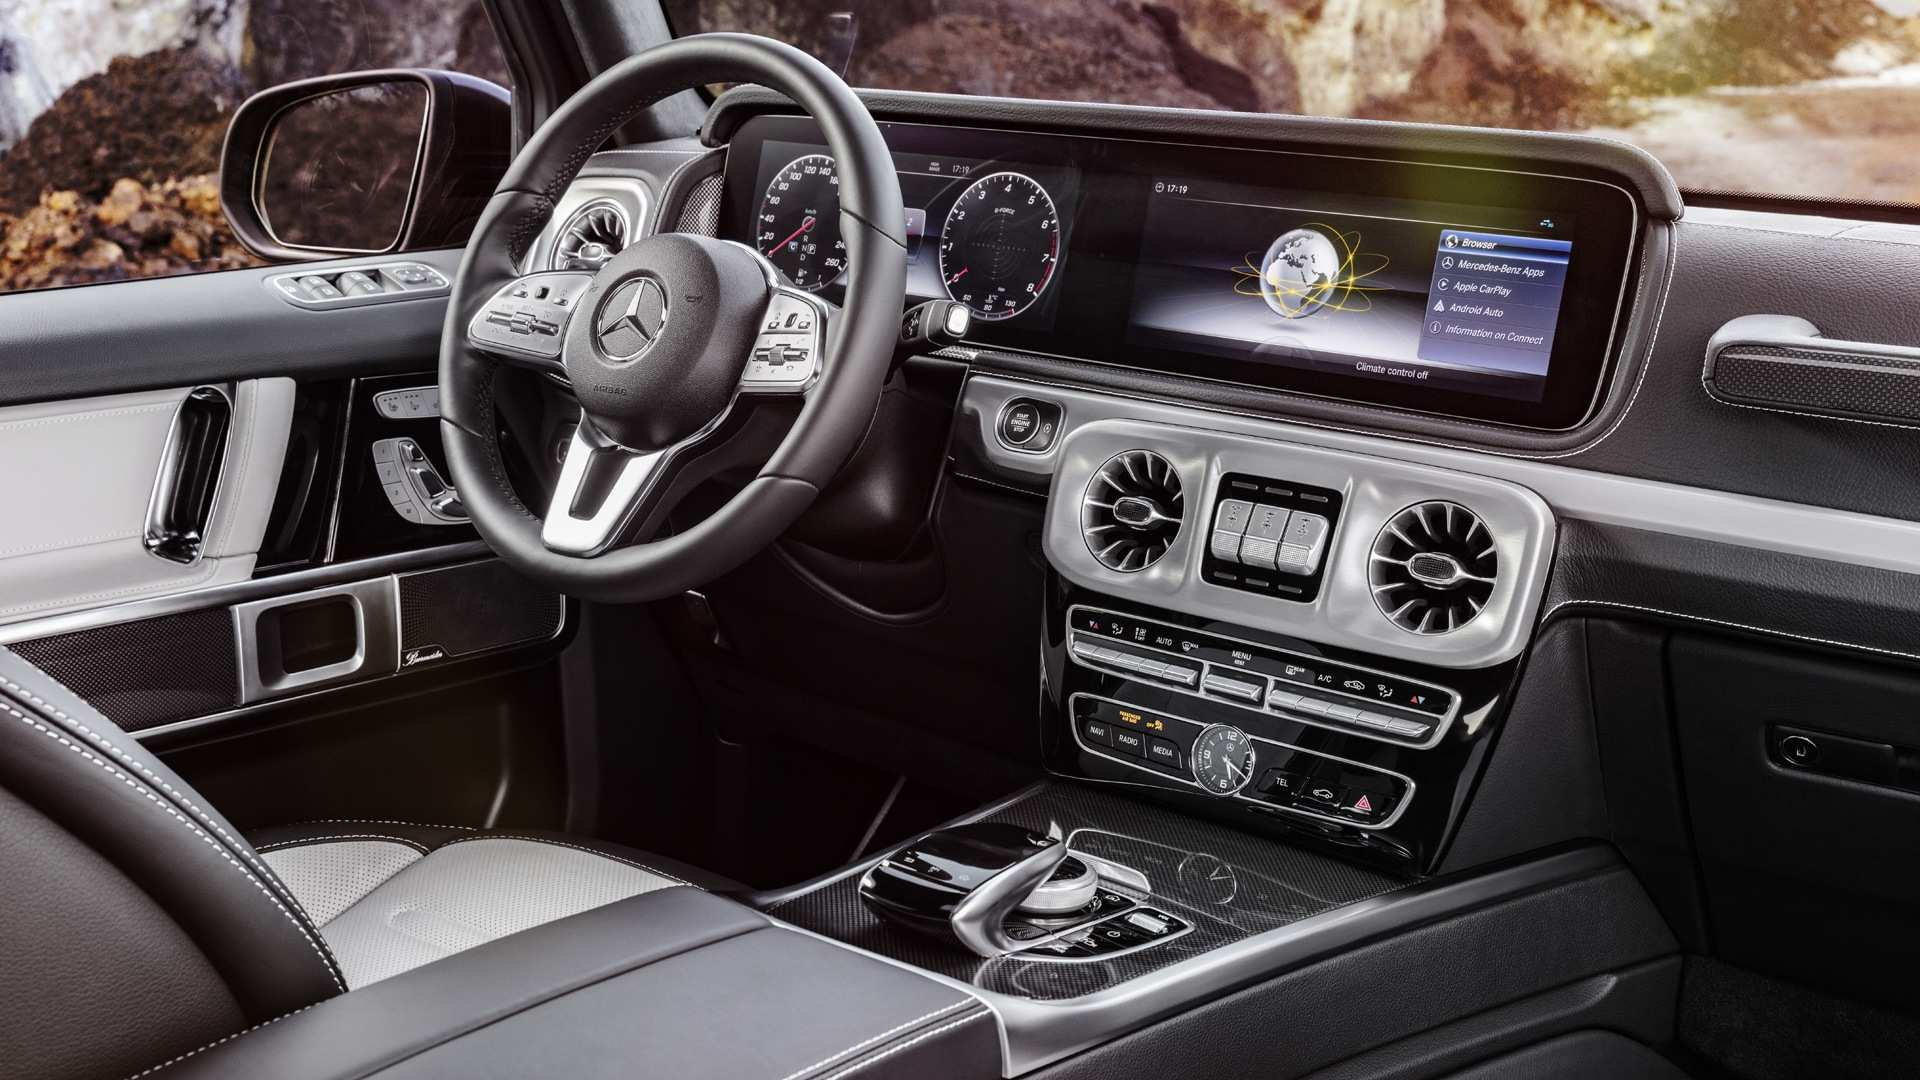 53 Best Review 2020 Mercedes G Wagon Exterior Date Images with 2020 Mercedes G Wagon Exterior Date